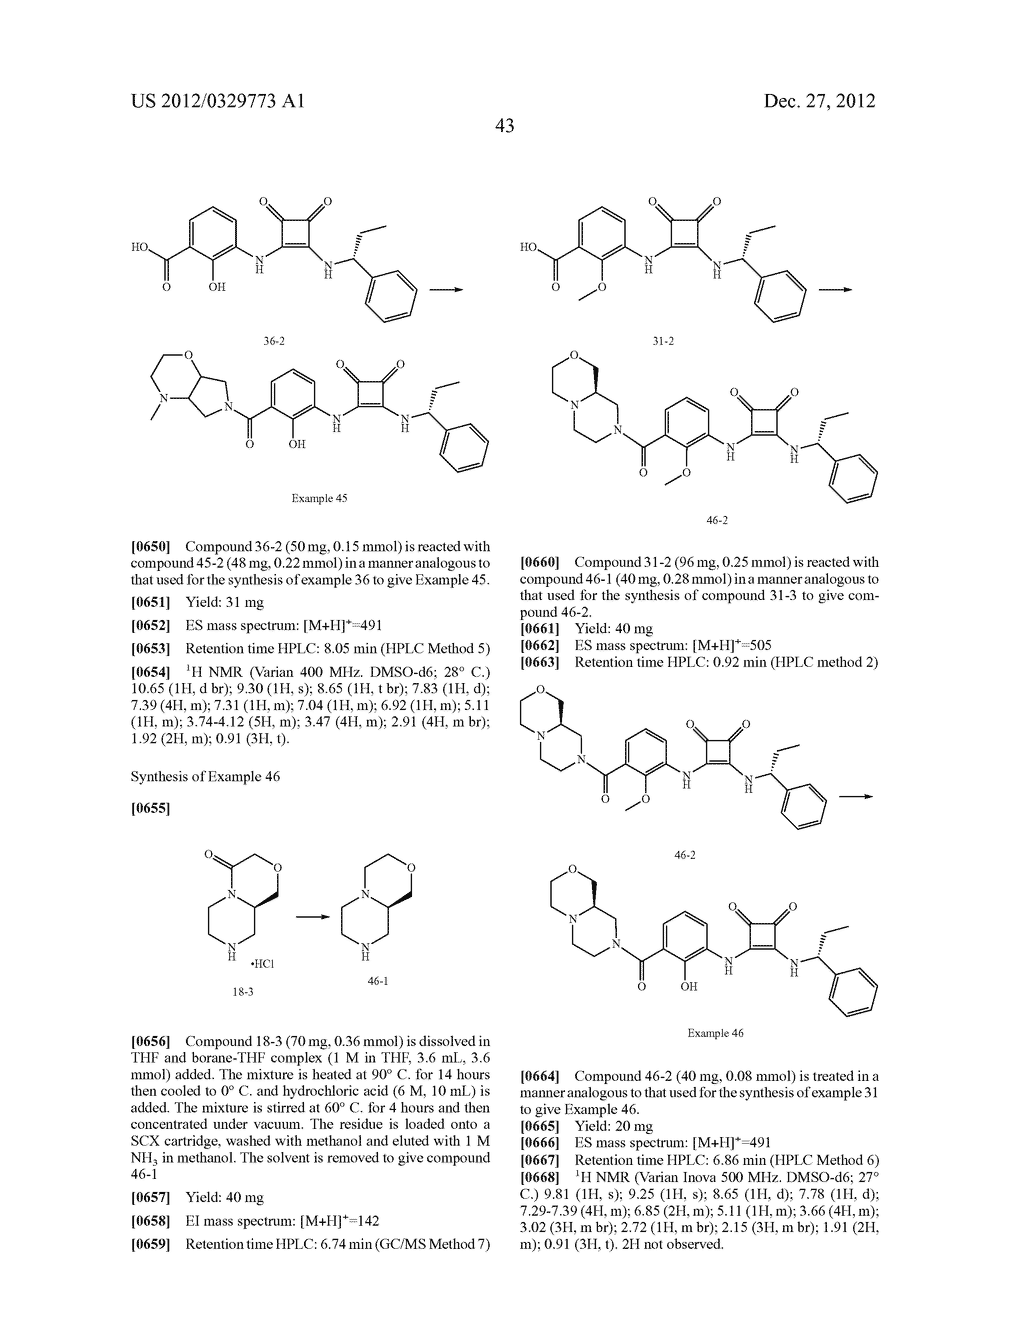 BICYCLIC RING SYSTEM SUBSTITUTED AMIDE FUNCTIONALISED PHENOLS AS     MEDICAMENTS - diagram, schematic, and image 44